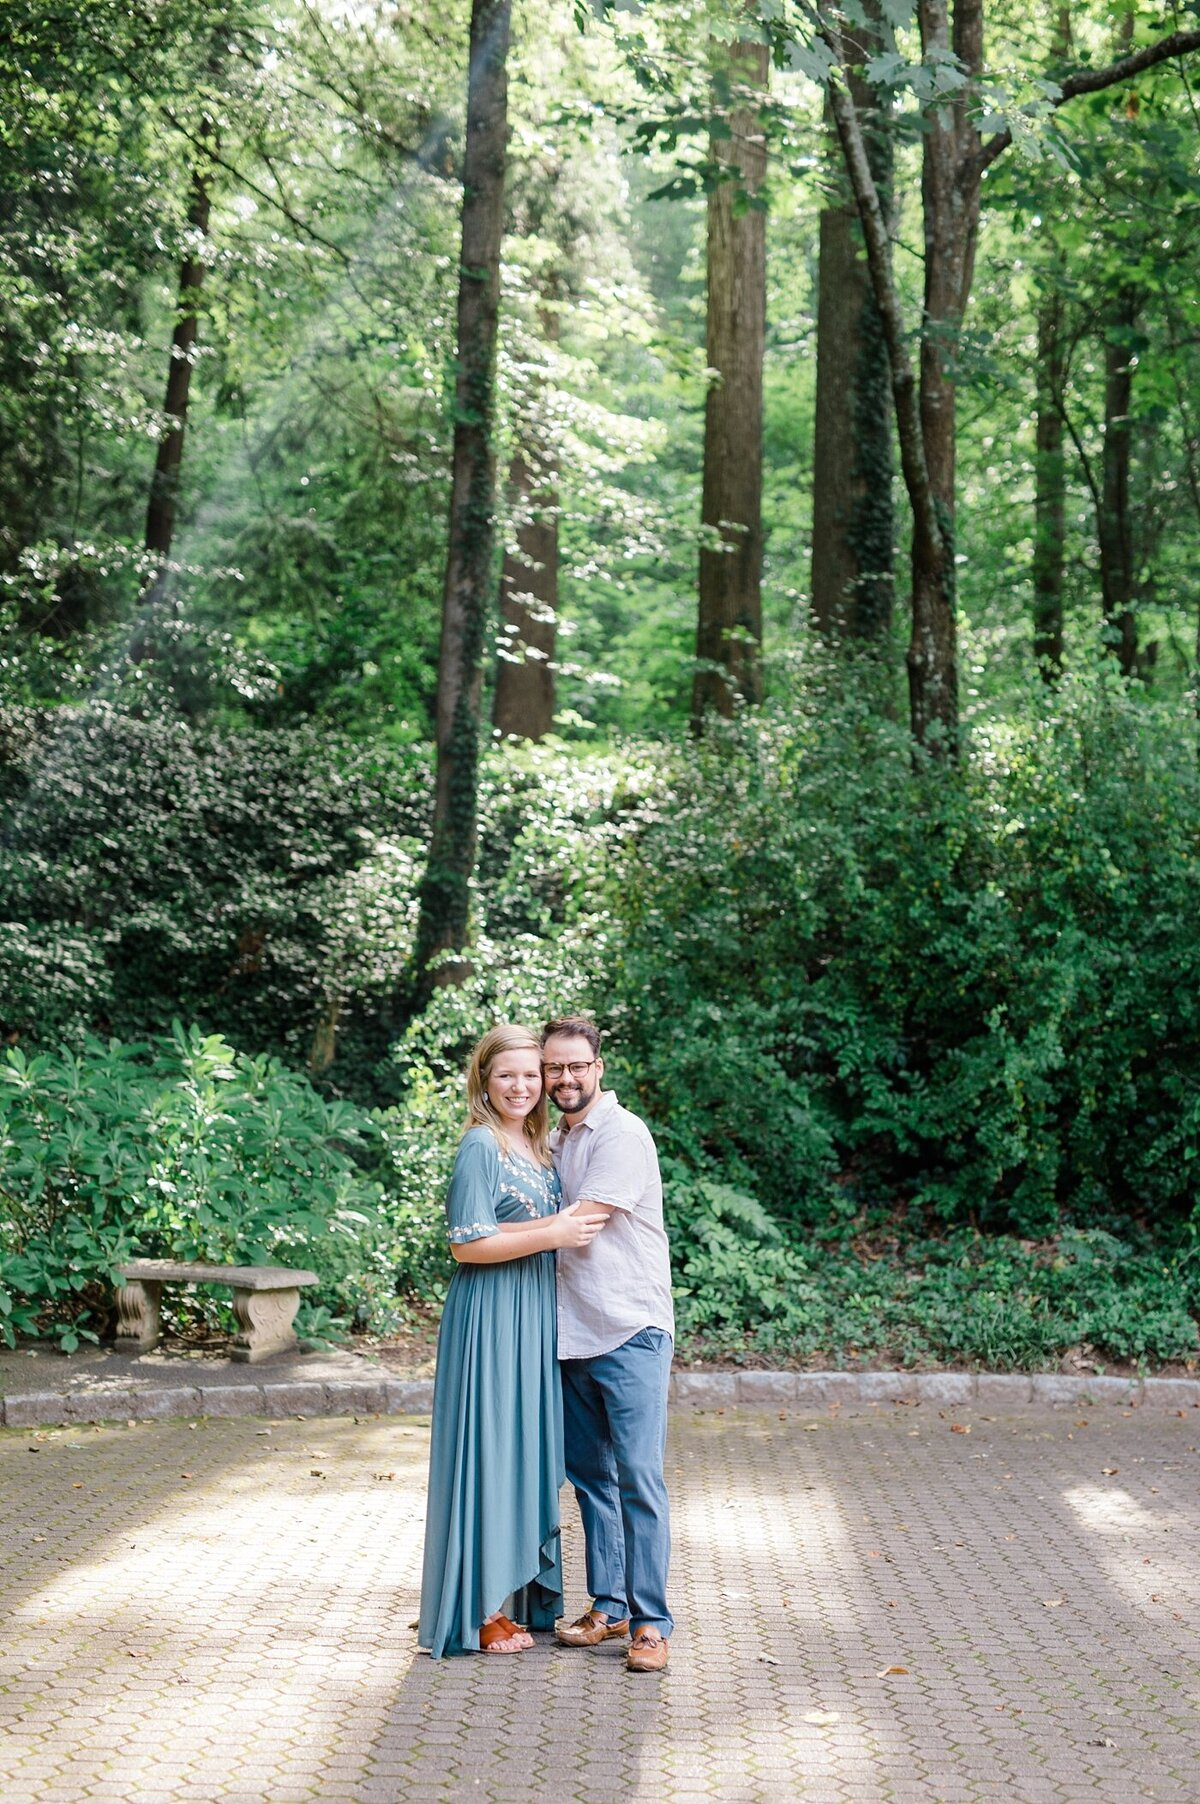 cator-woolford-gardens-engagement-wedding-photographer-laura-barnes-photo-shackelford-24